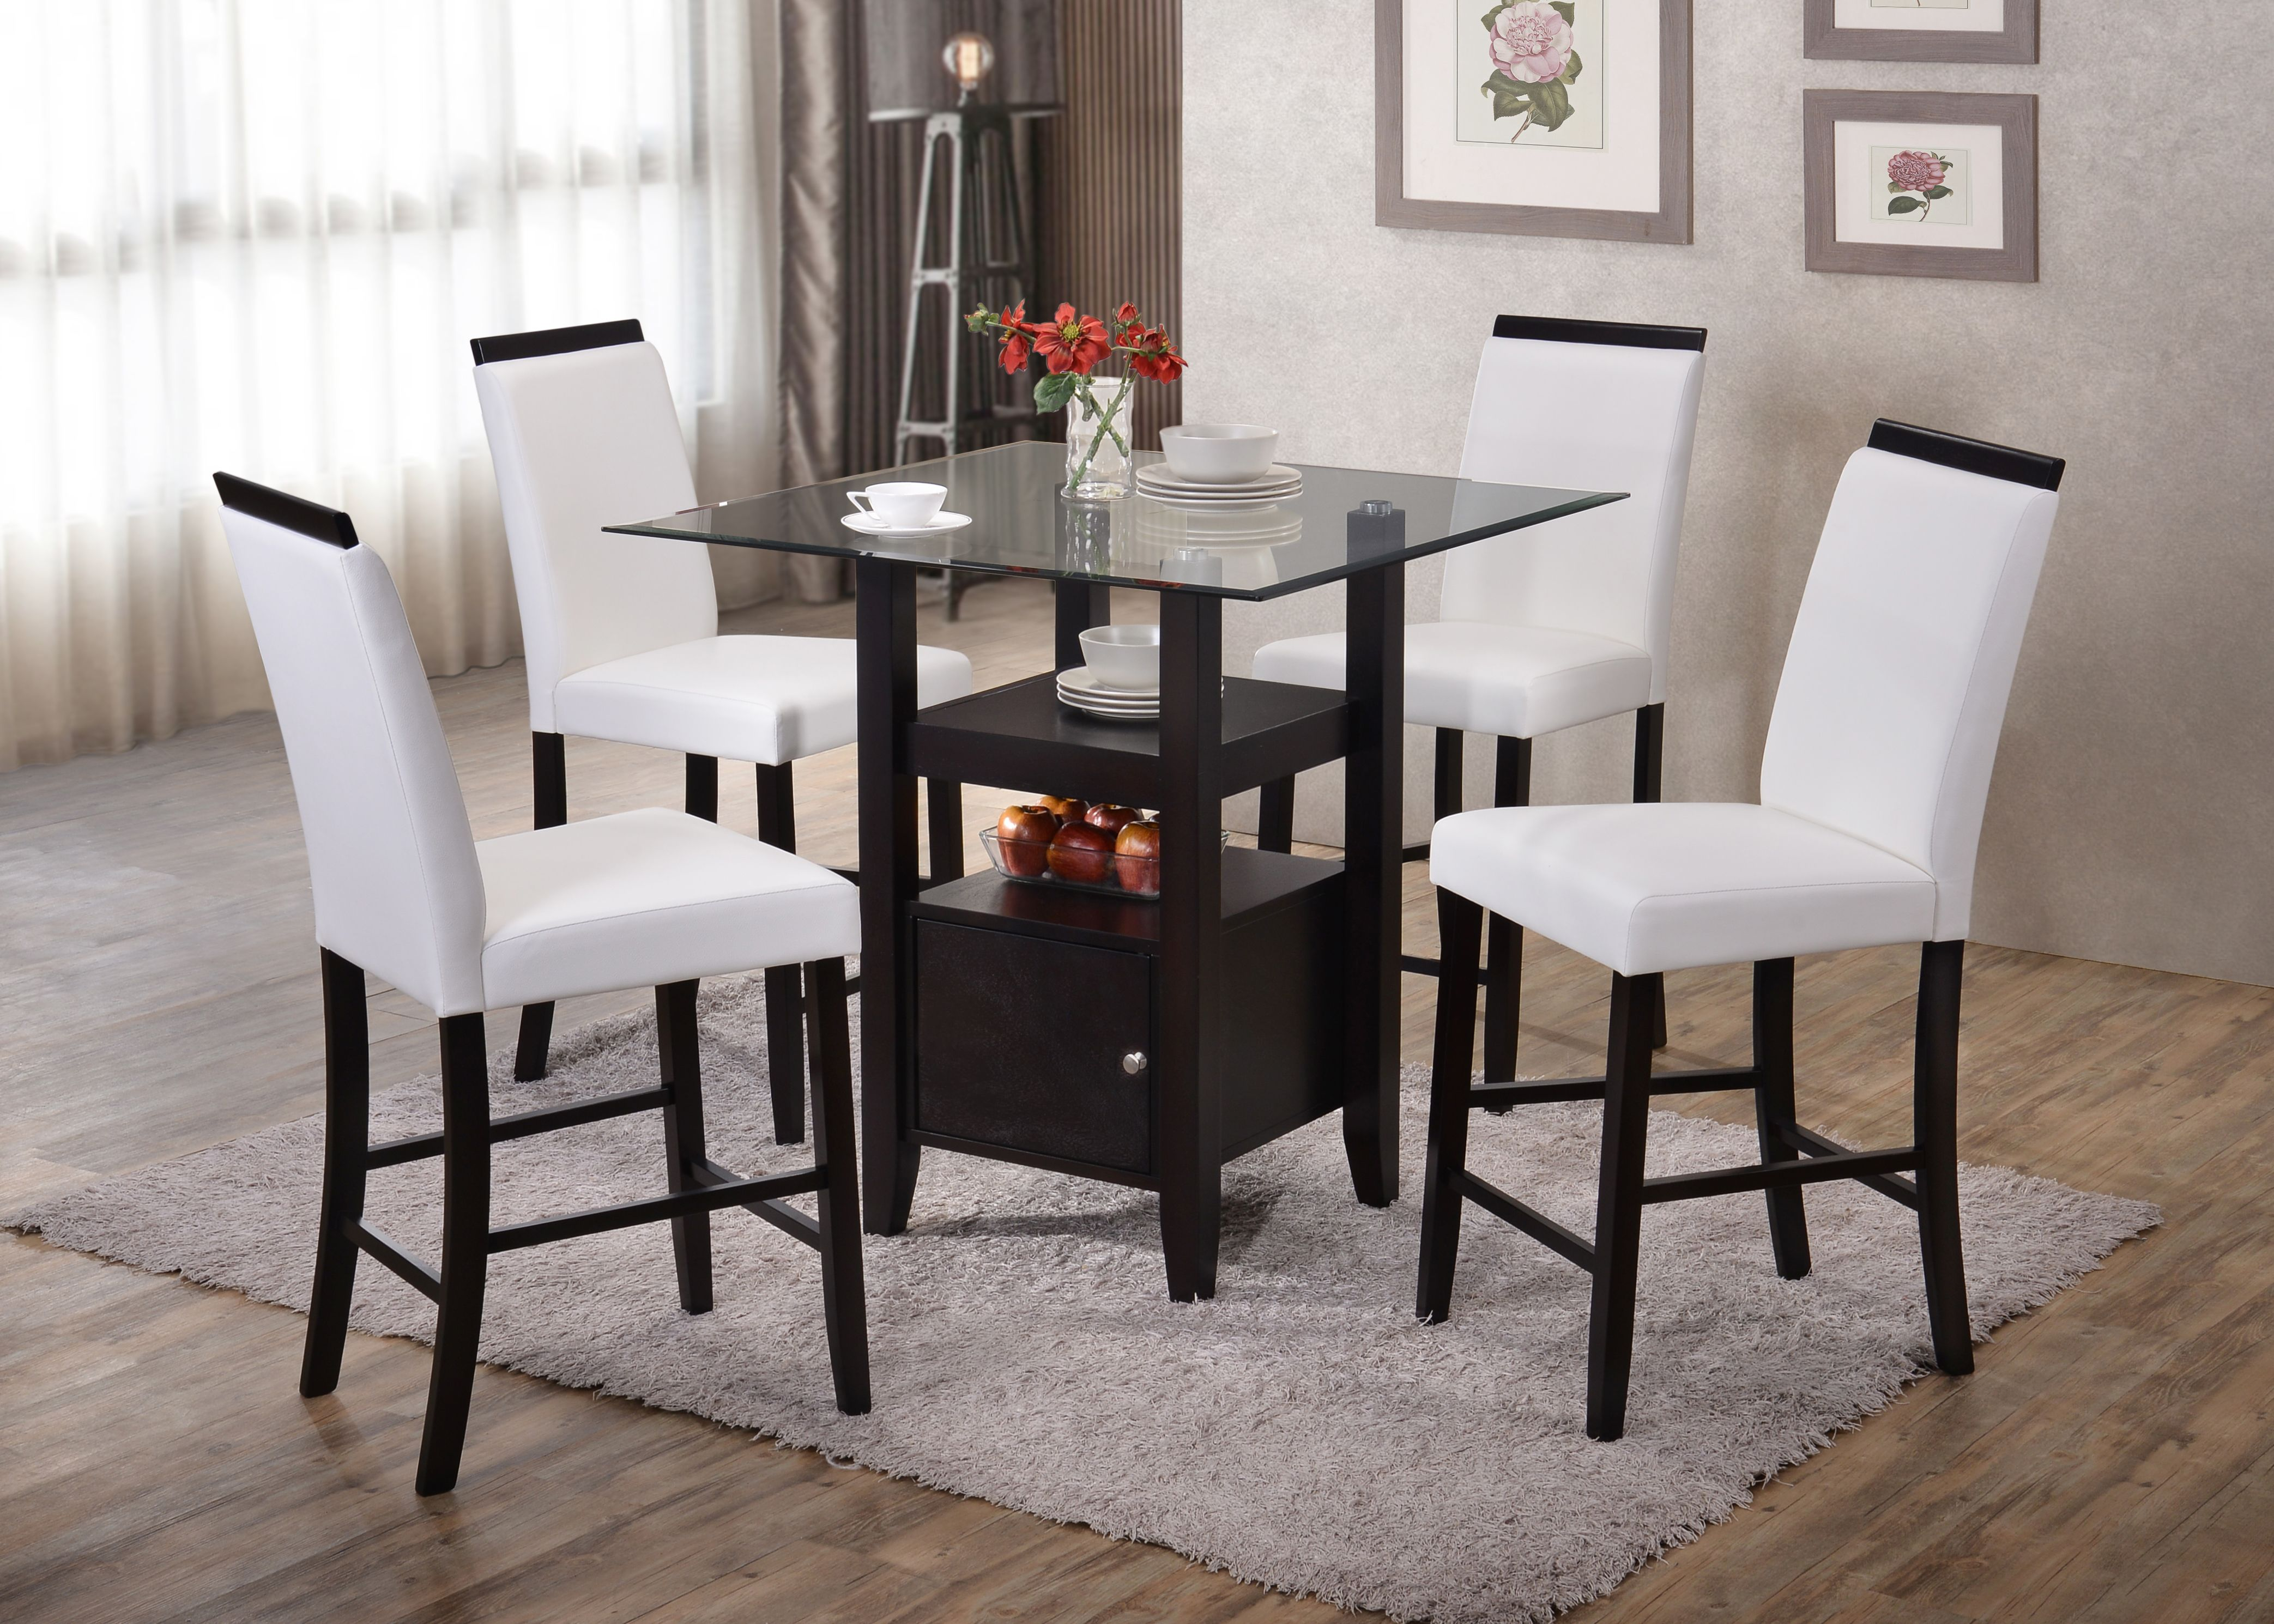 5 Piece Cappuccino Wood U0026 Glass Square Counter Height Kitchen Dinette Dining  Table 4 White 24